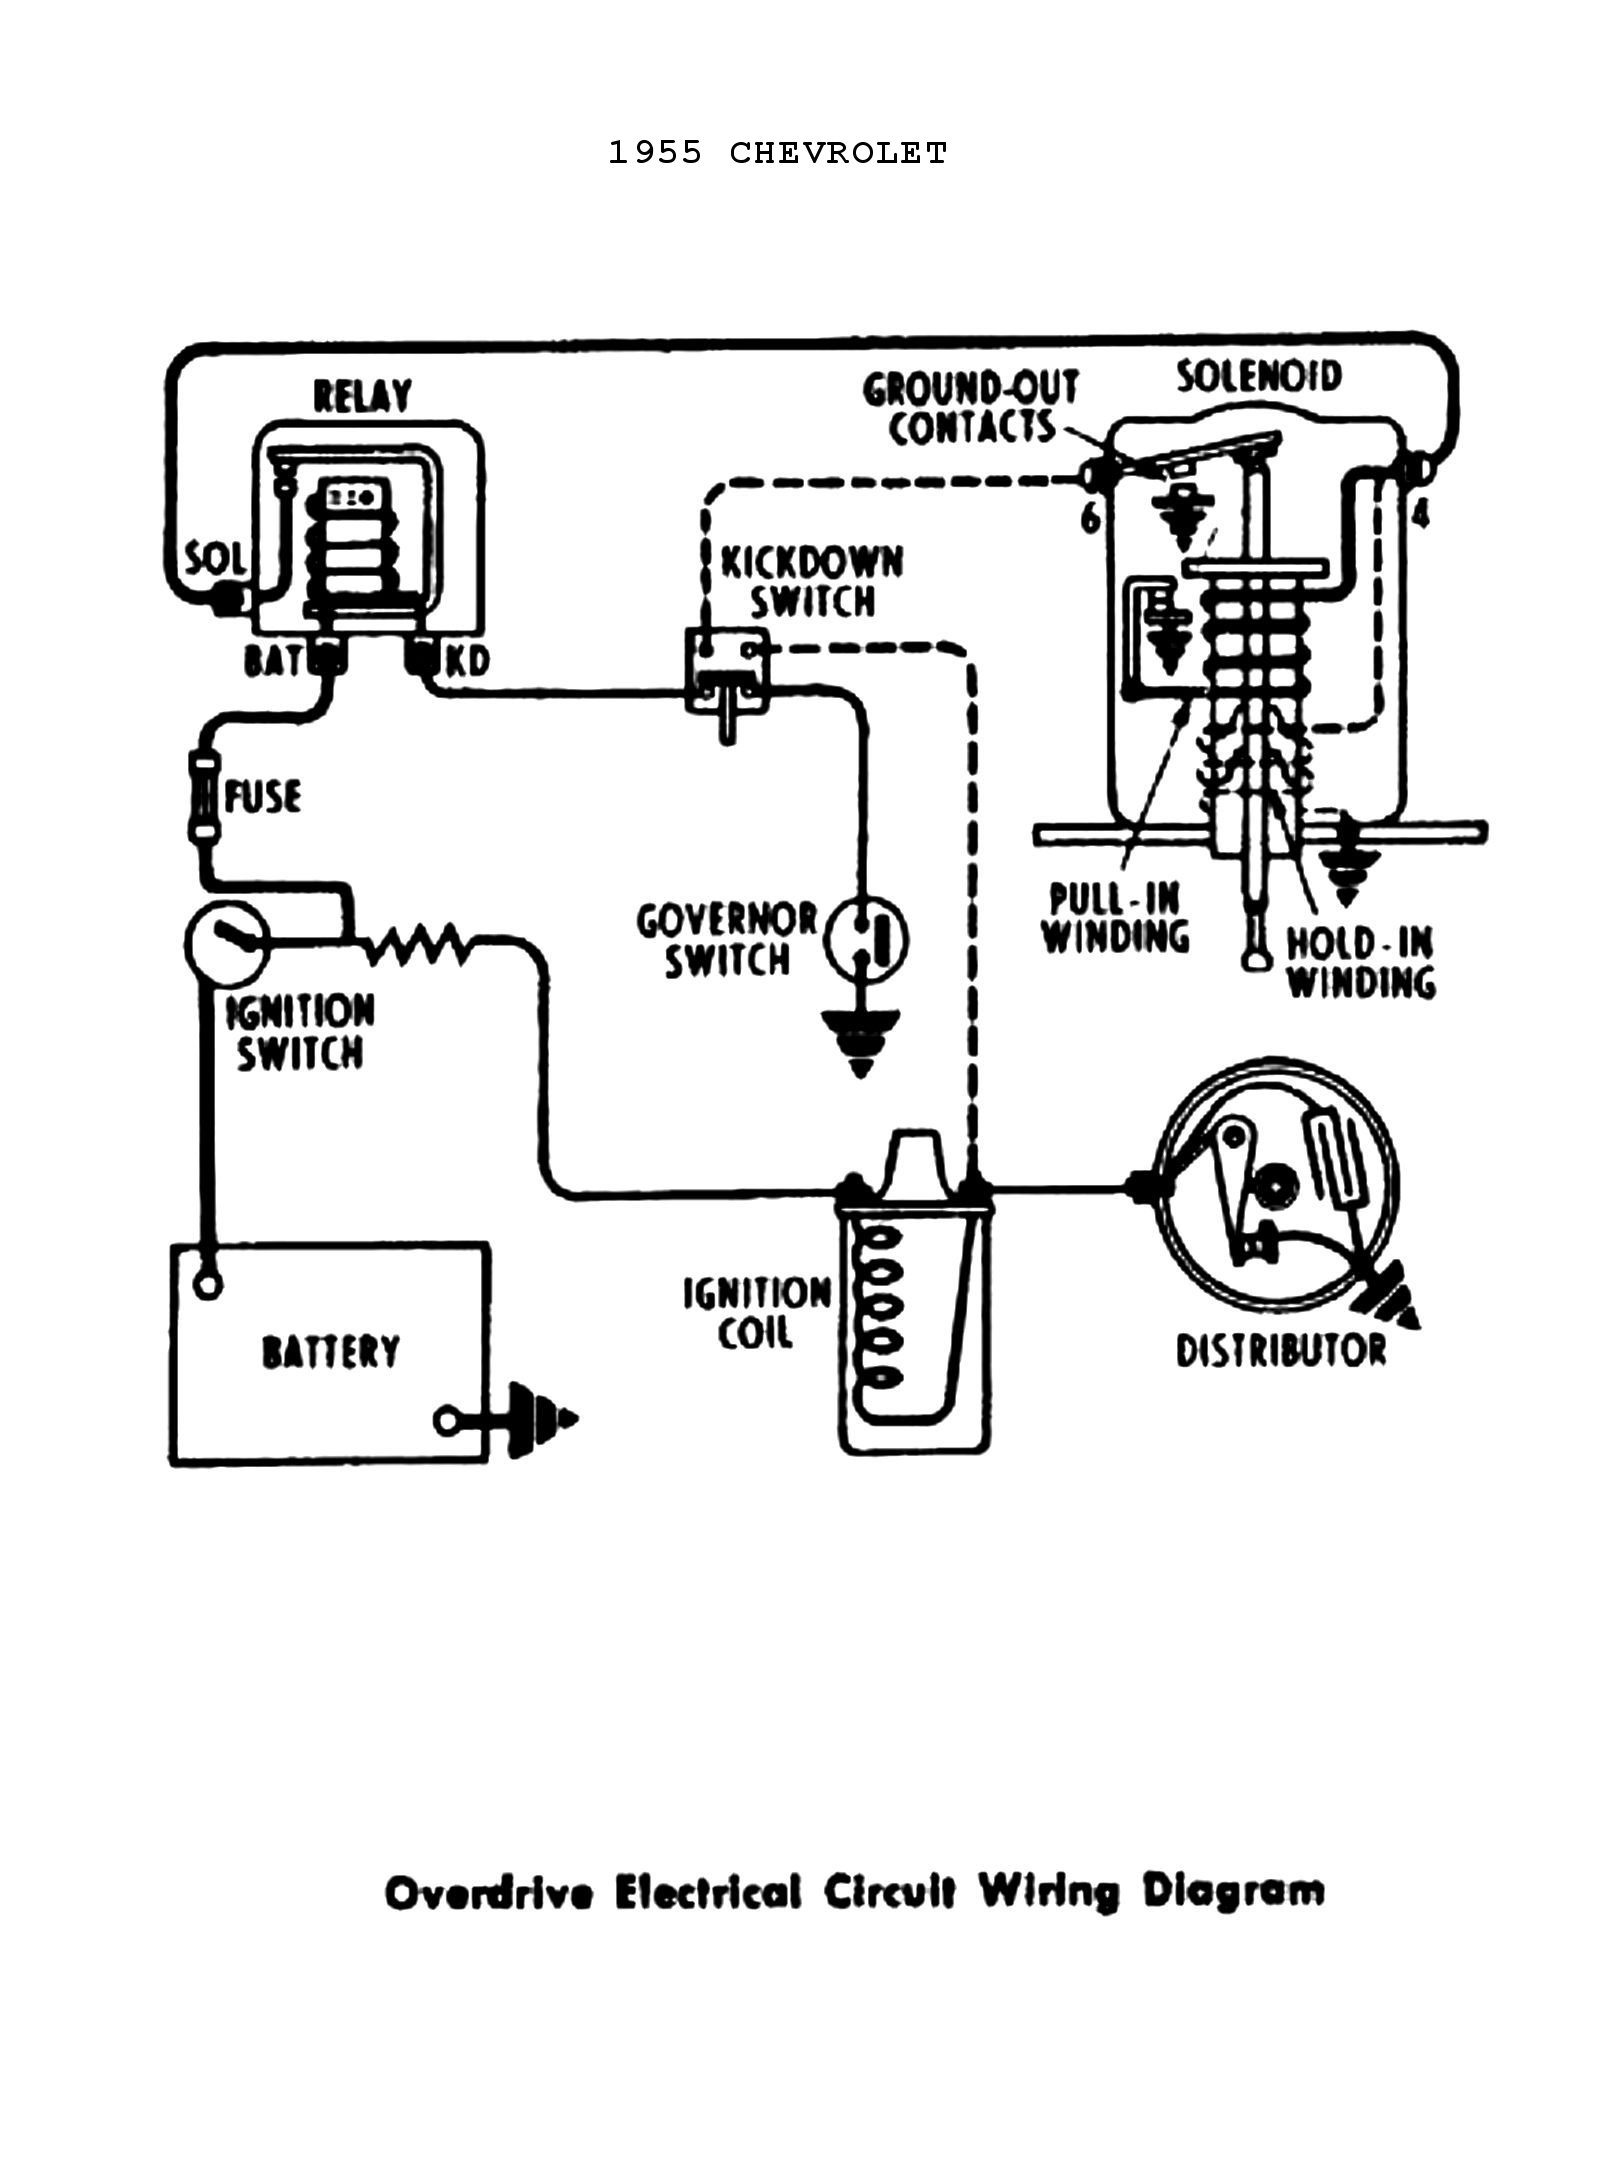 55odtrans1 chevrolet ignition wiring diagram wiring diagram simonand sbc hei distributor wiring diagram at n-0.co